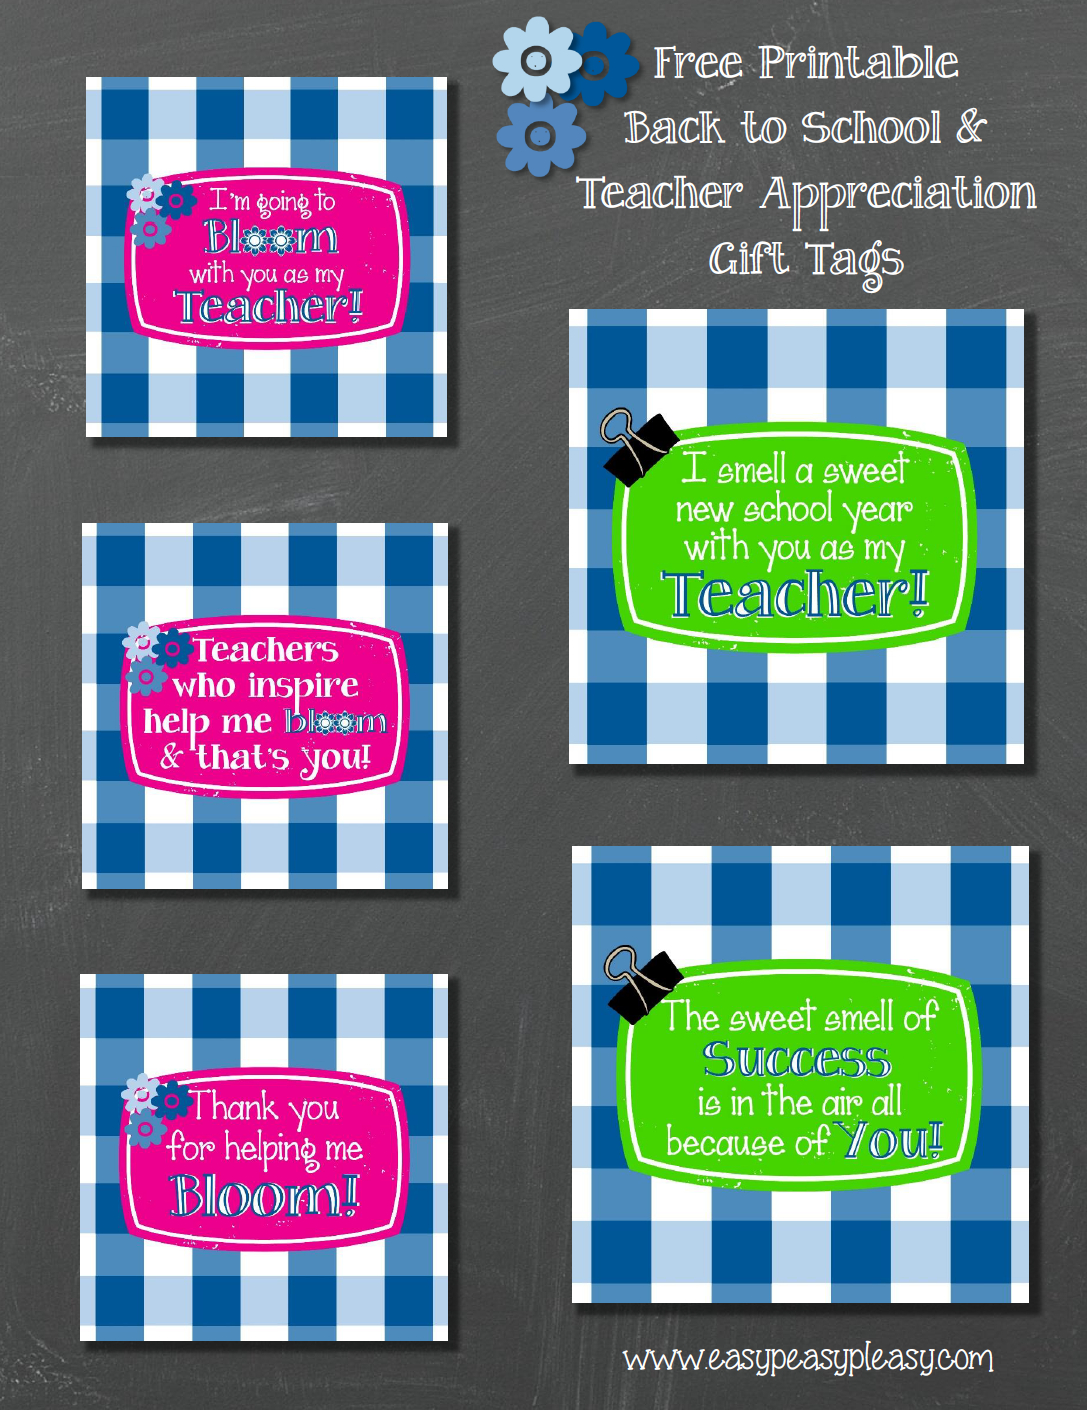 Free Printable Teacher Gift Tags And Gift Idea - Easy Peasy Pleasy - Free Printable Name Tags For Teachers